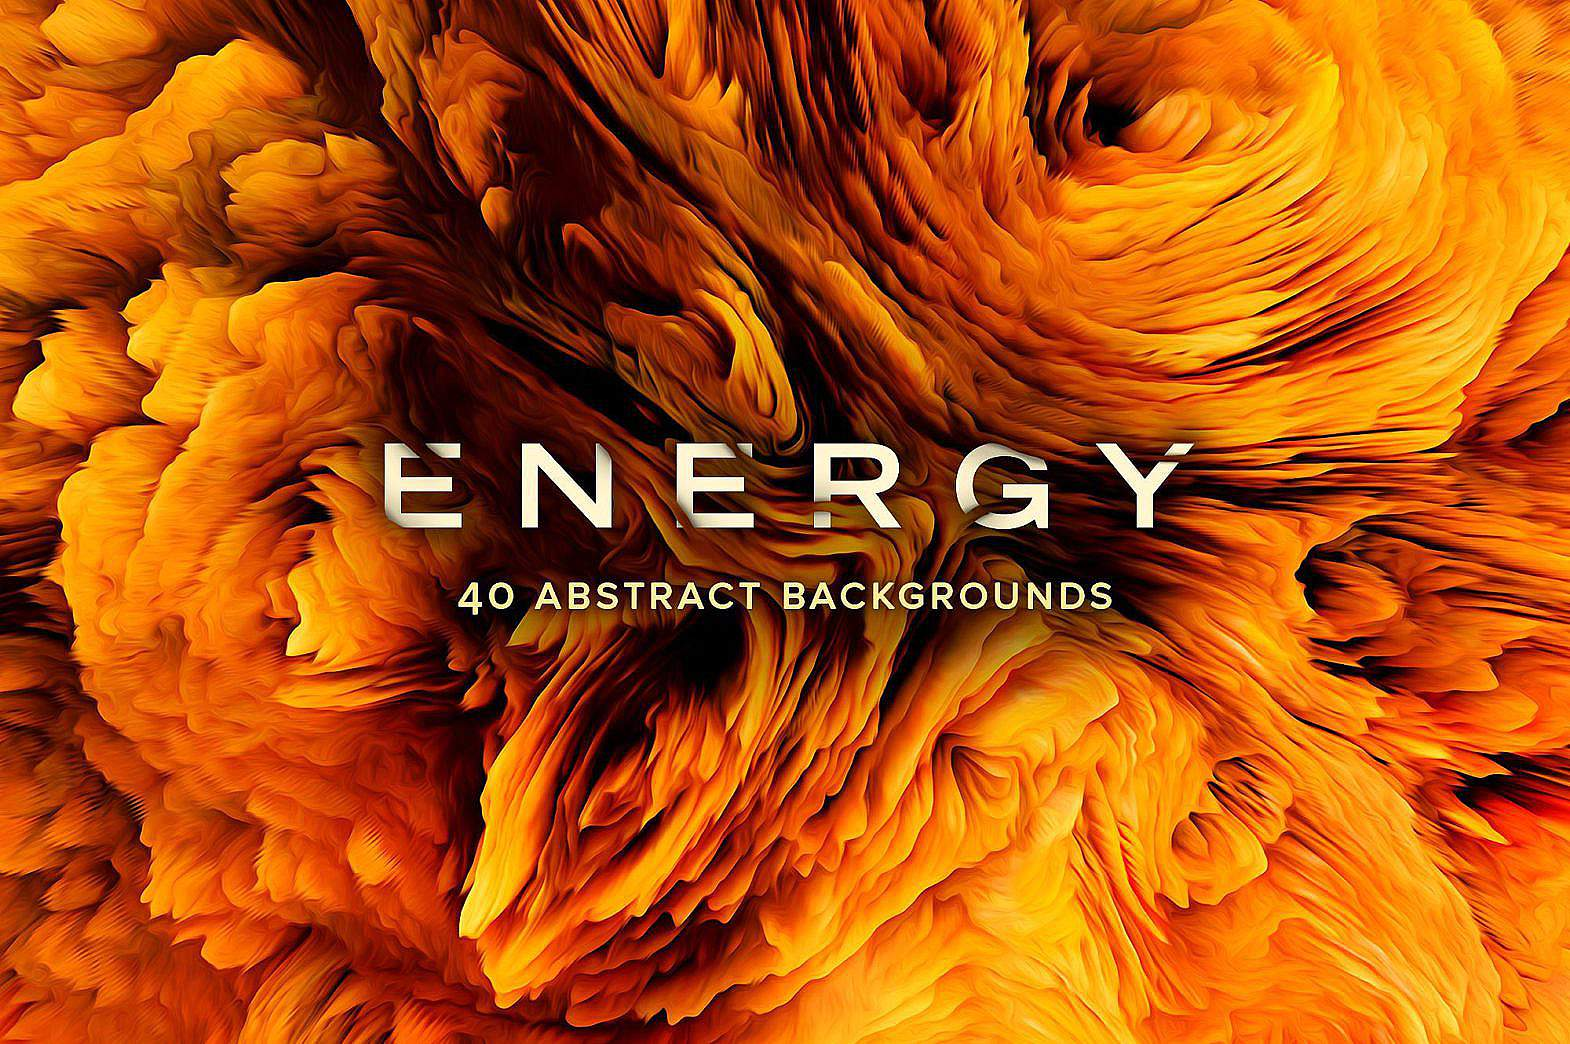 Energy: 40 Abstract Backgrounds Free Stock Photo Download